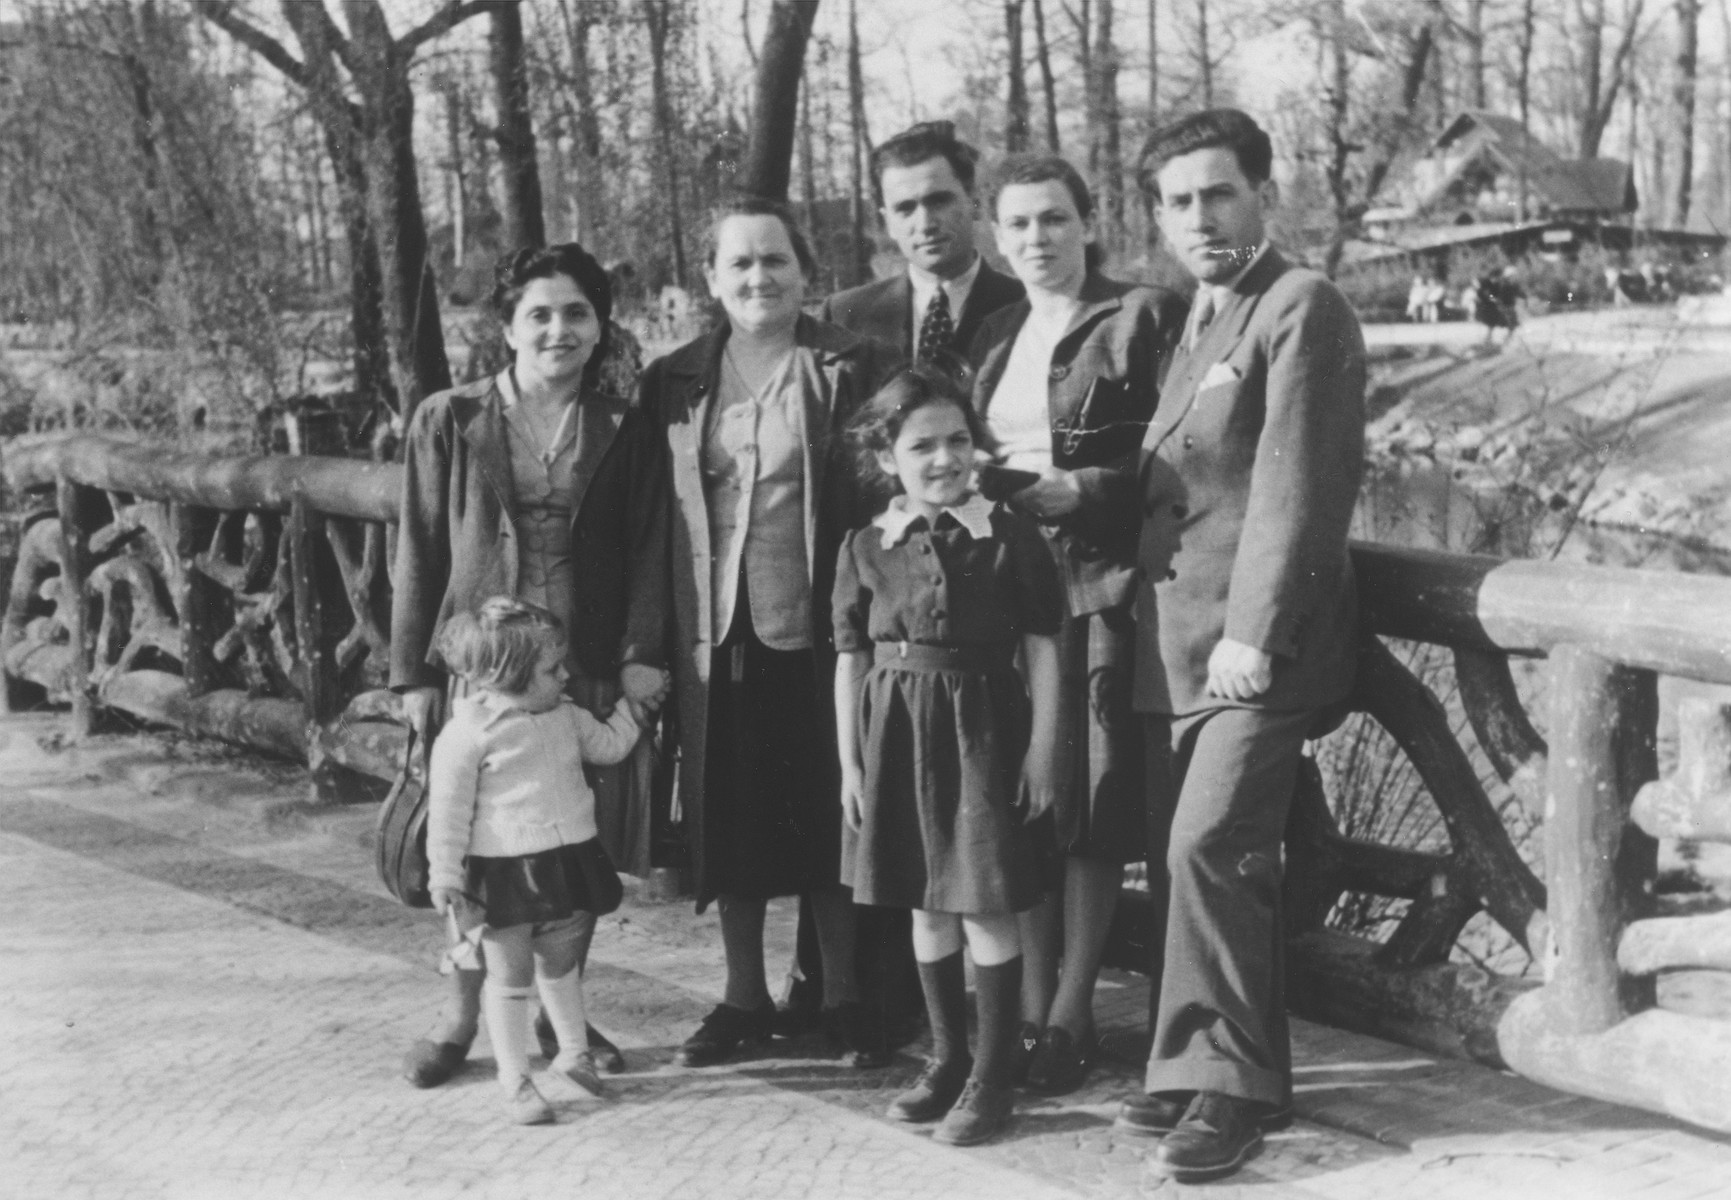 Group of survivors from Kazimierza Wielka who Shmuel Rakowski escorted out of Poland on a Bricha route.  Among those pictured are Israel Zalzman; his brother  Arye Zalman with his wife,  Bat Sheva Zalzman; and  Bat Sheva's mother, Hava Kaplan.